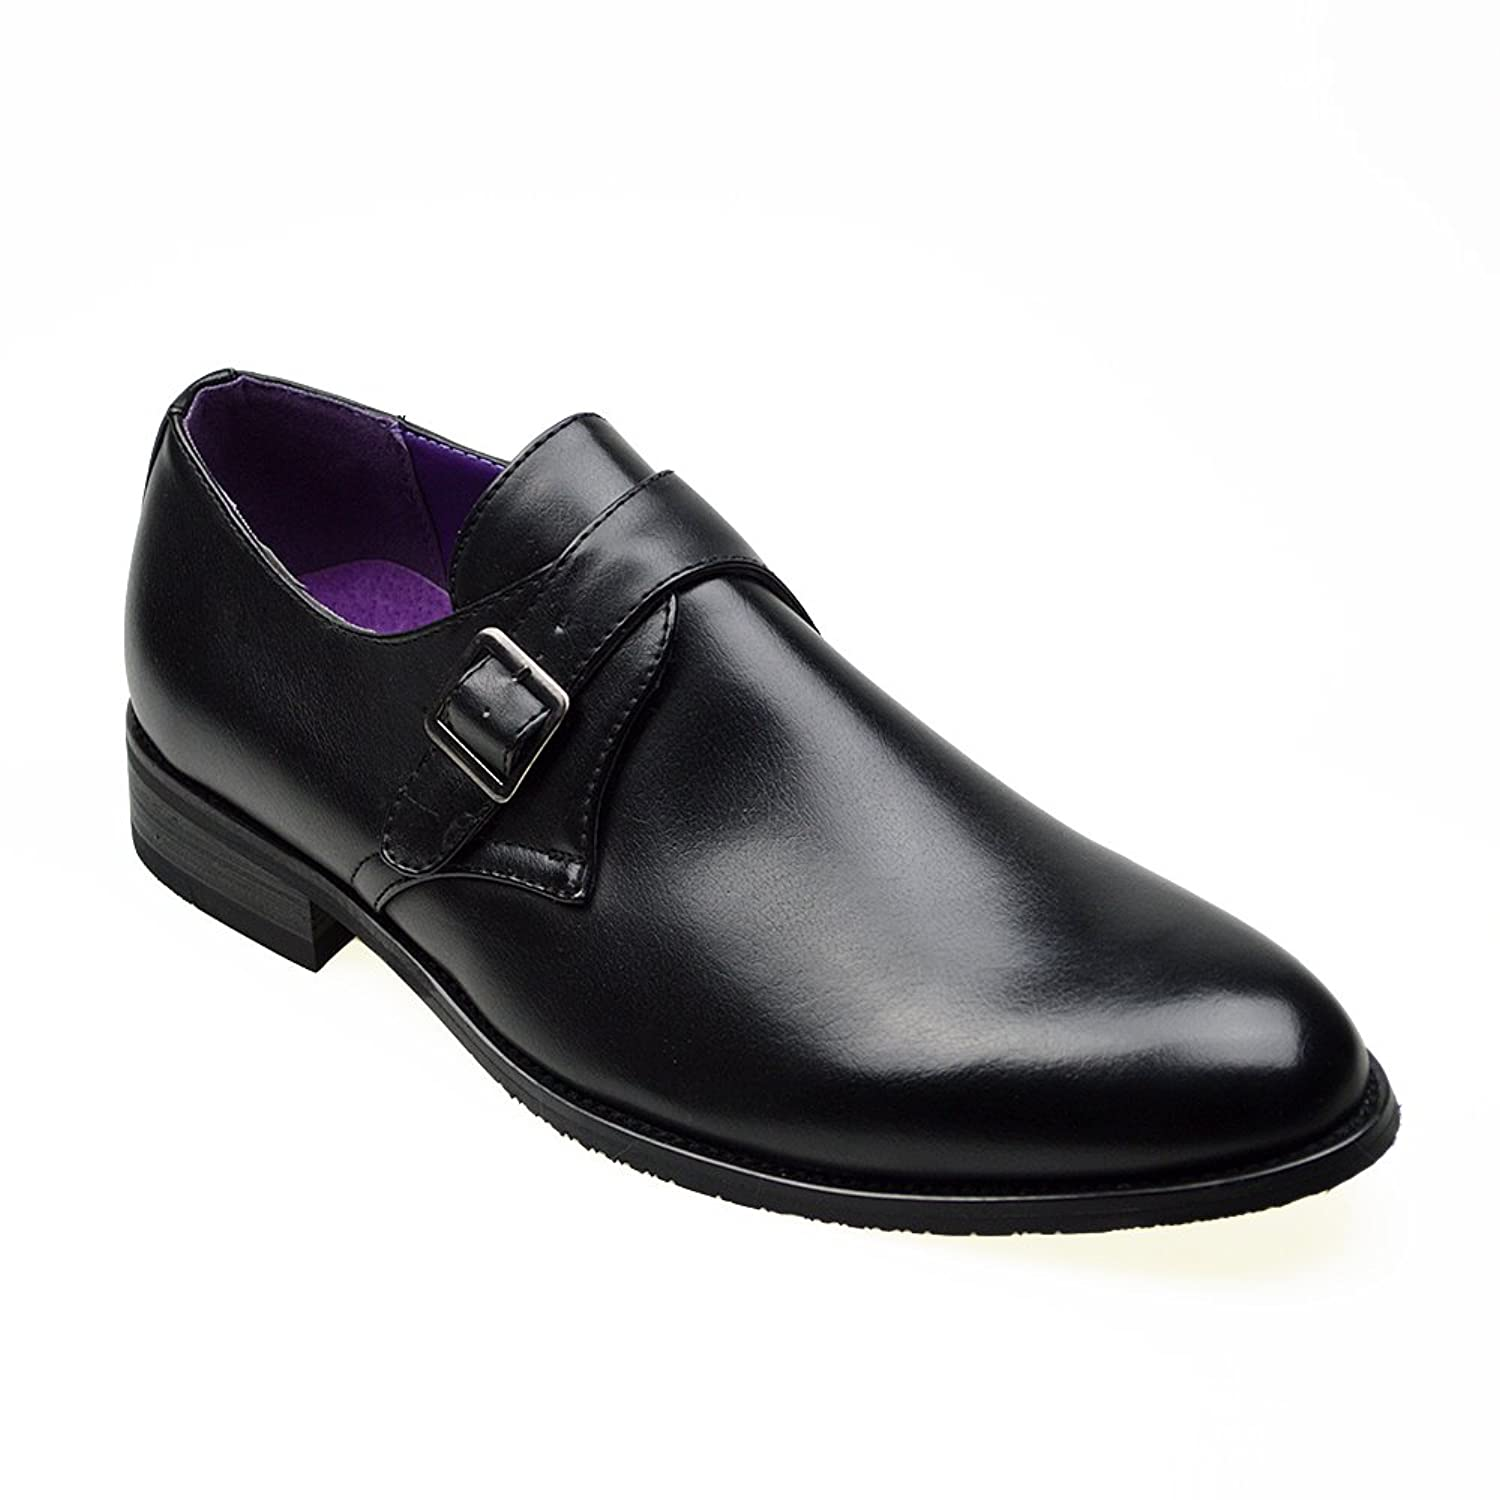 7ab4d8223e87 Robelli Mens Casual Black Leather Smart Formal Slip on Buckle Shoes UK SIZE  6 7 8